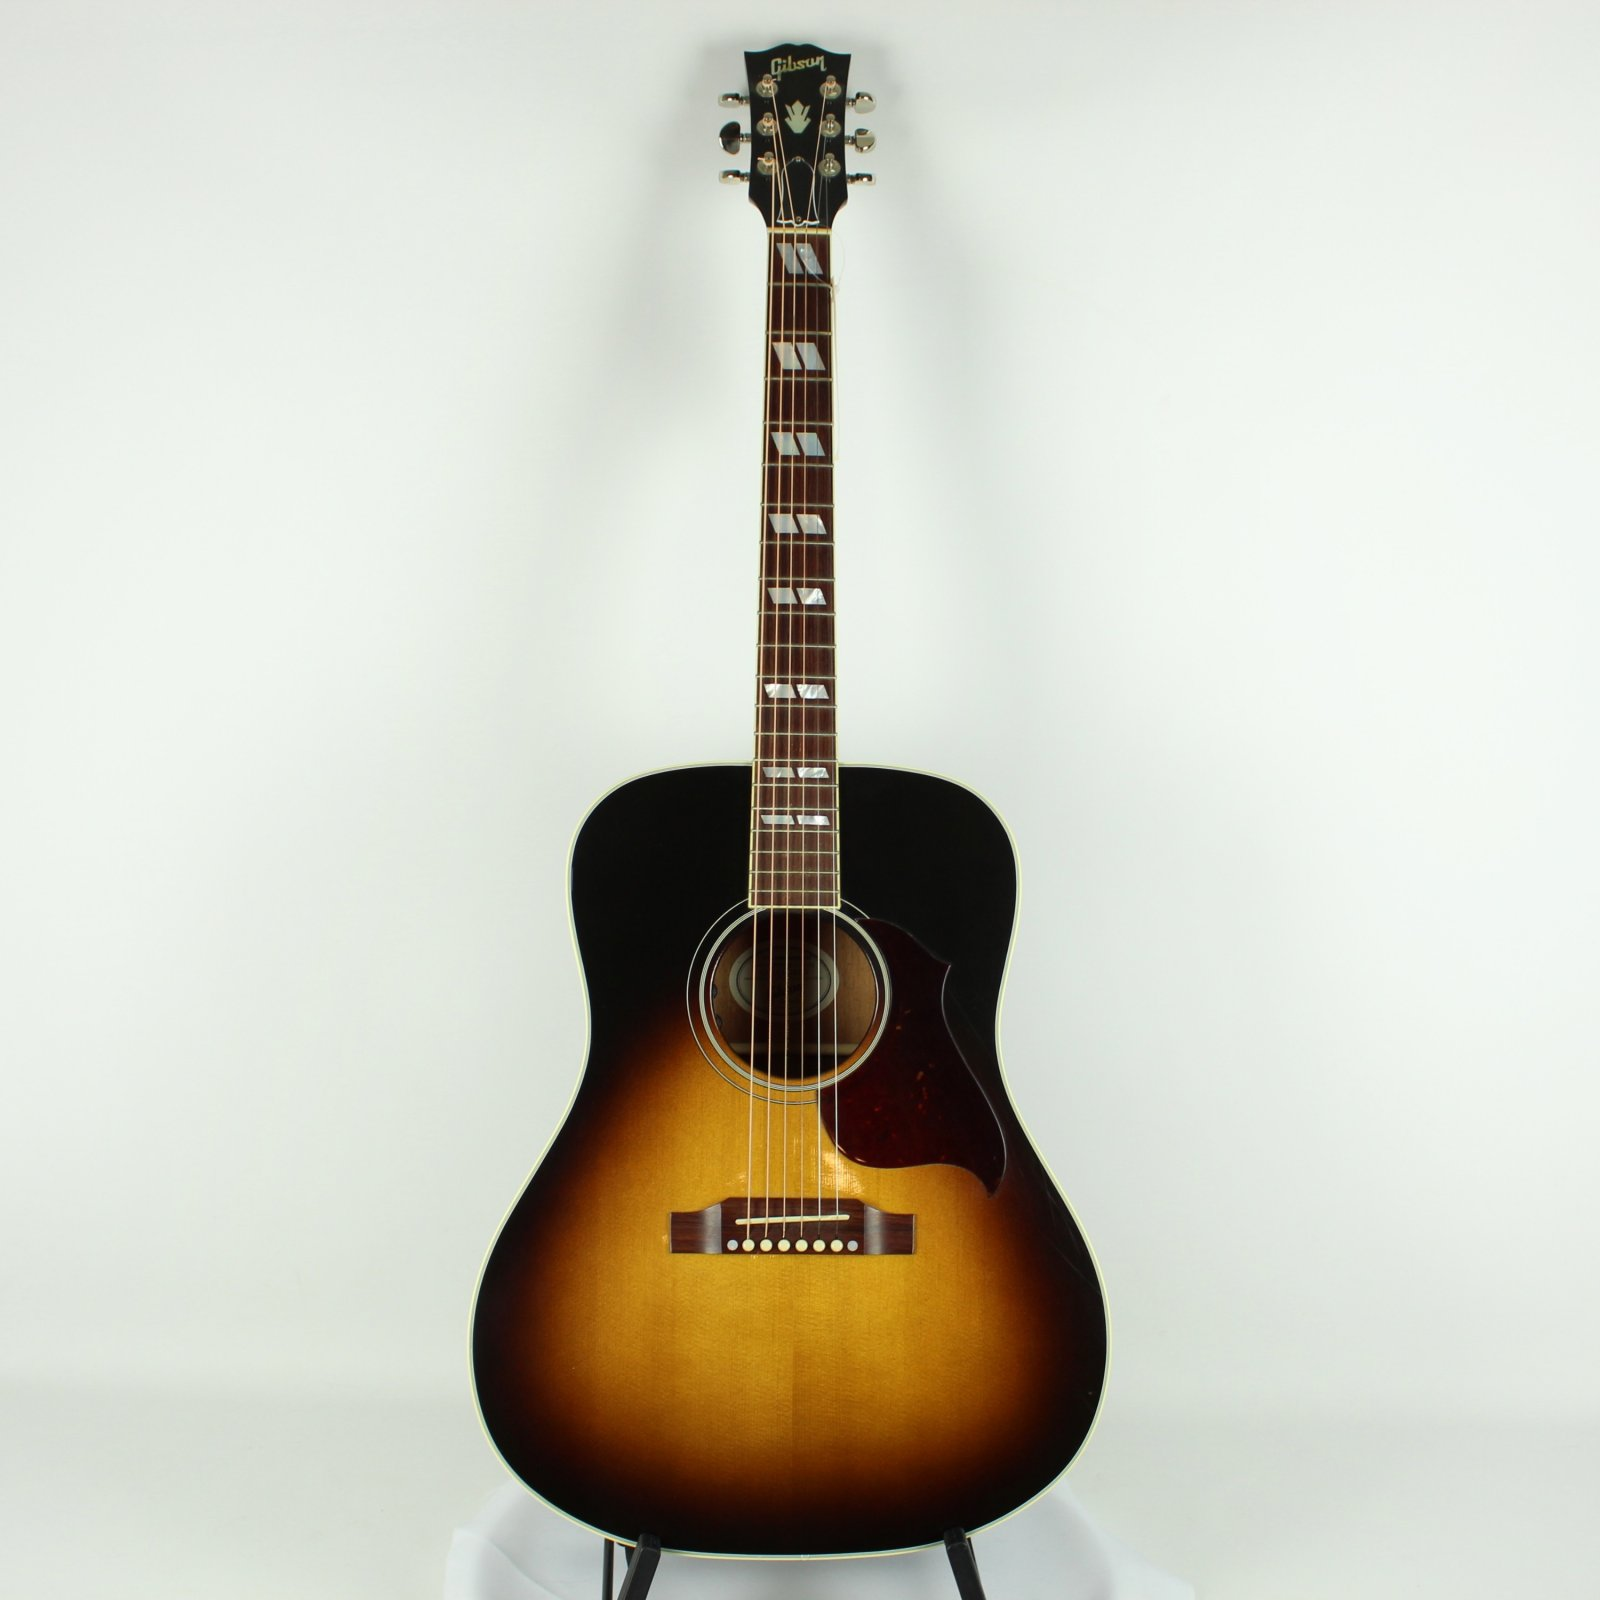 2017 Gibson Hummingbird Pro Acoustic-Electric Guitar w/ Original Case (USED)